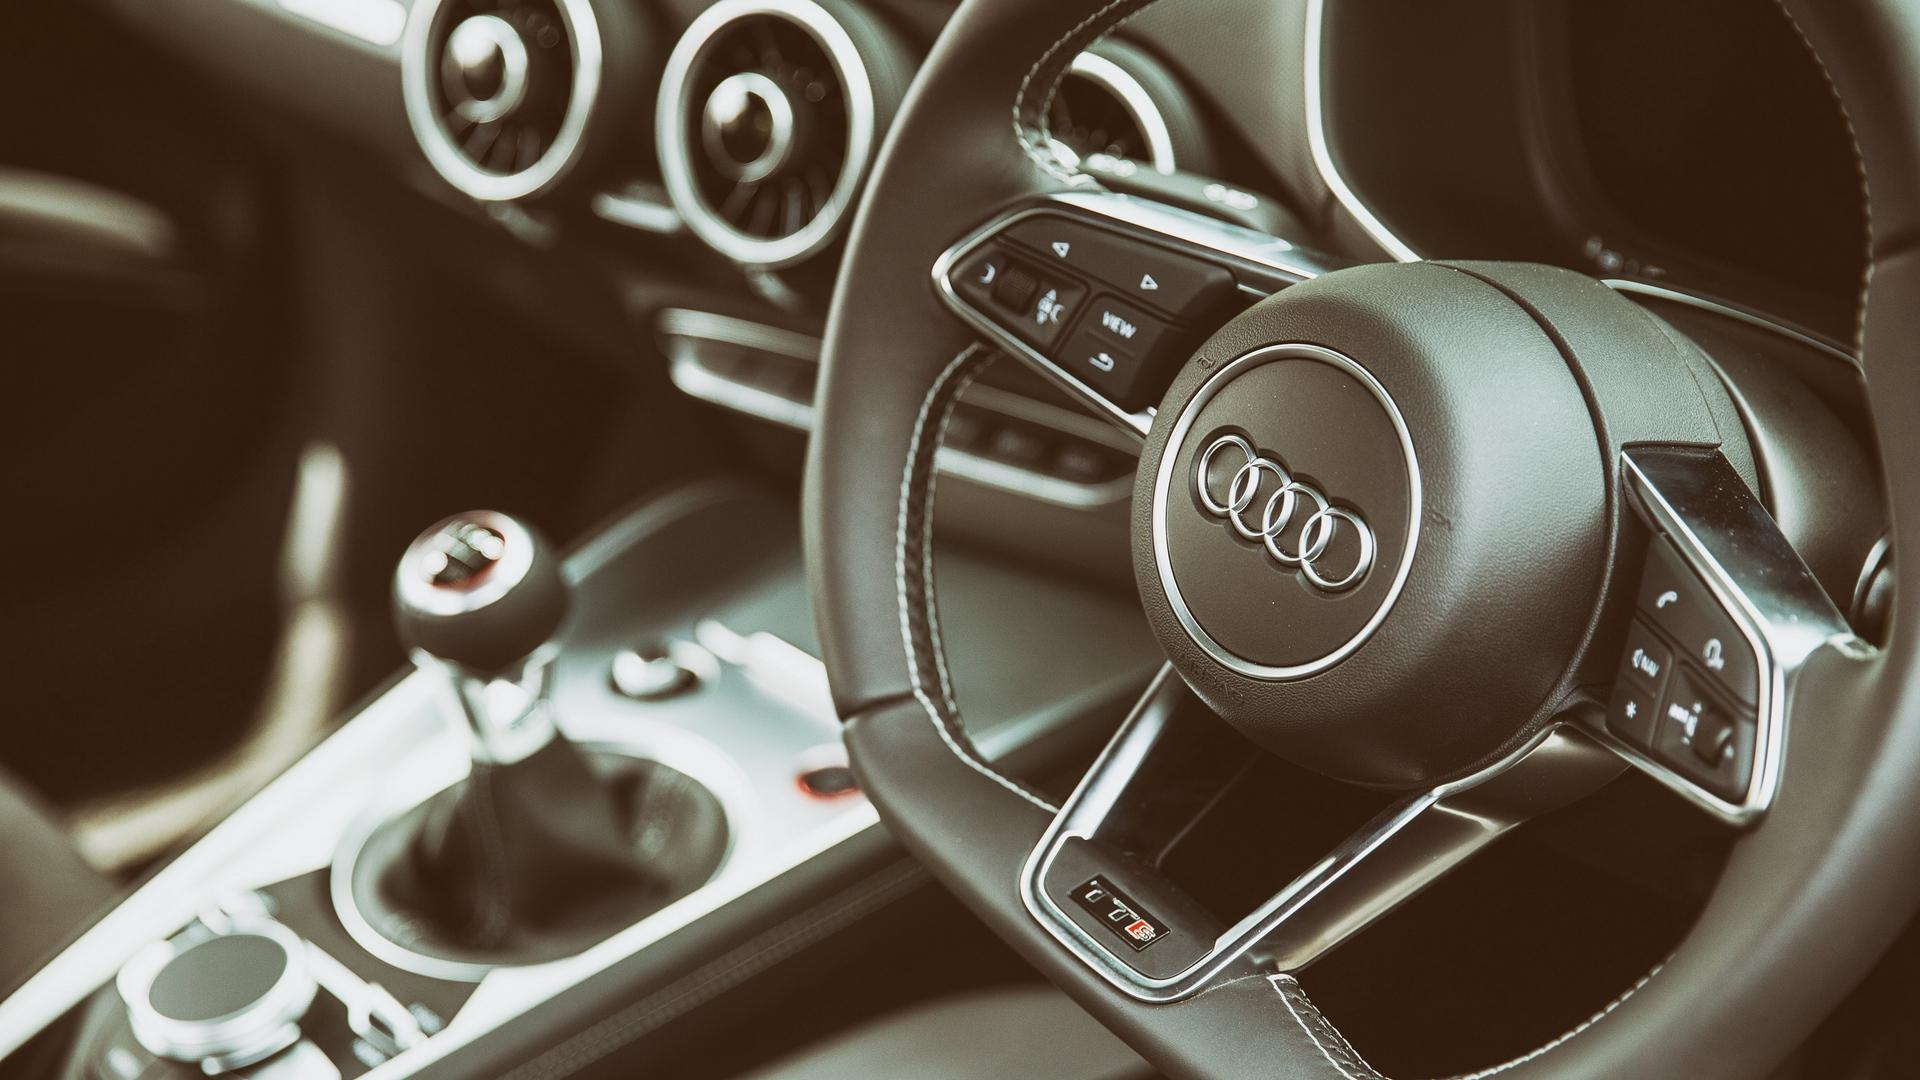 Audi TTS Steering Wheel Interior Wallpapers